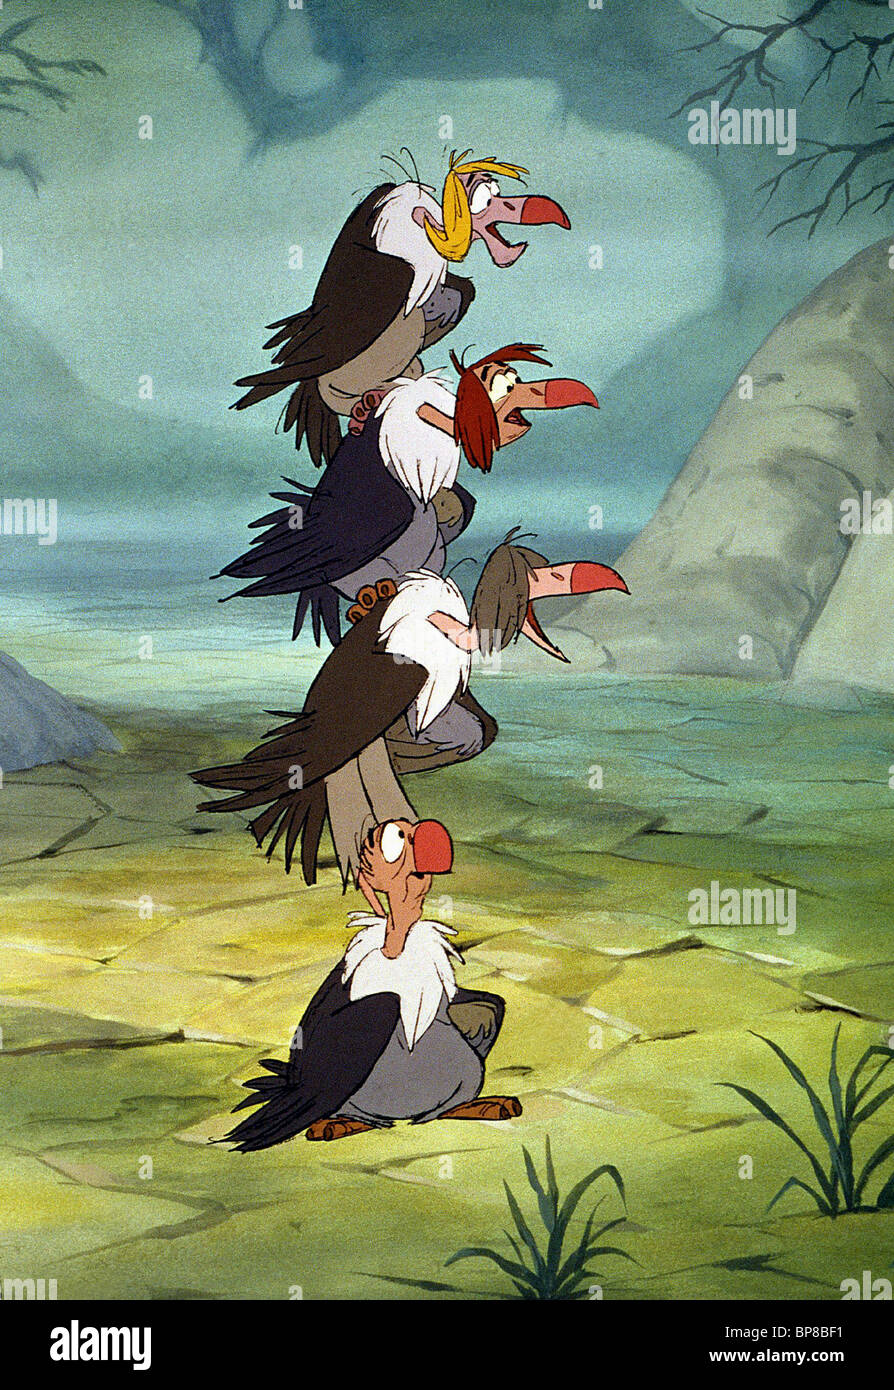 Uncategorized Jungle Book Vultures vultures the jungle book 1967 stock photo royalty free image 1967